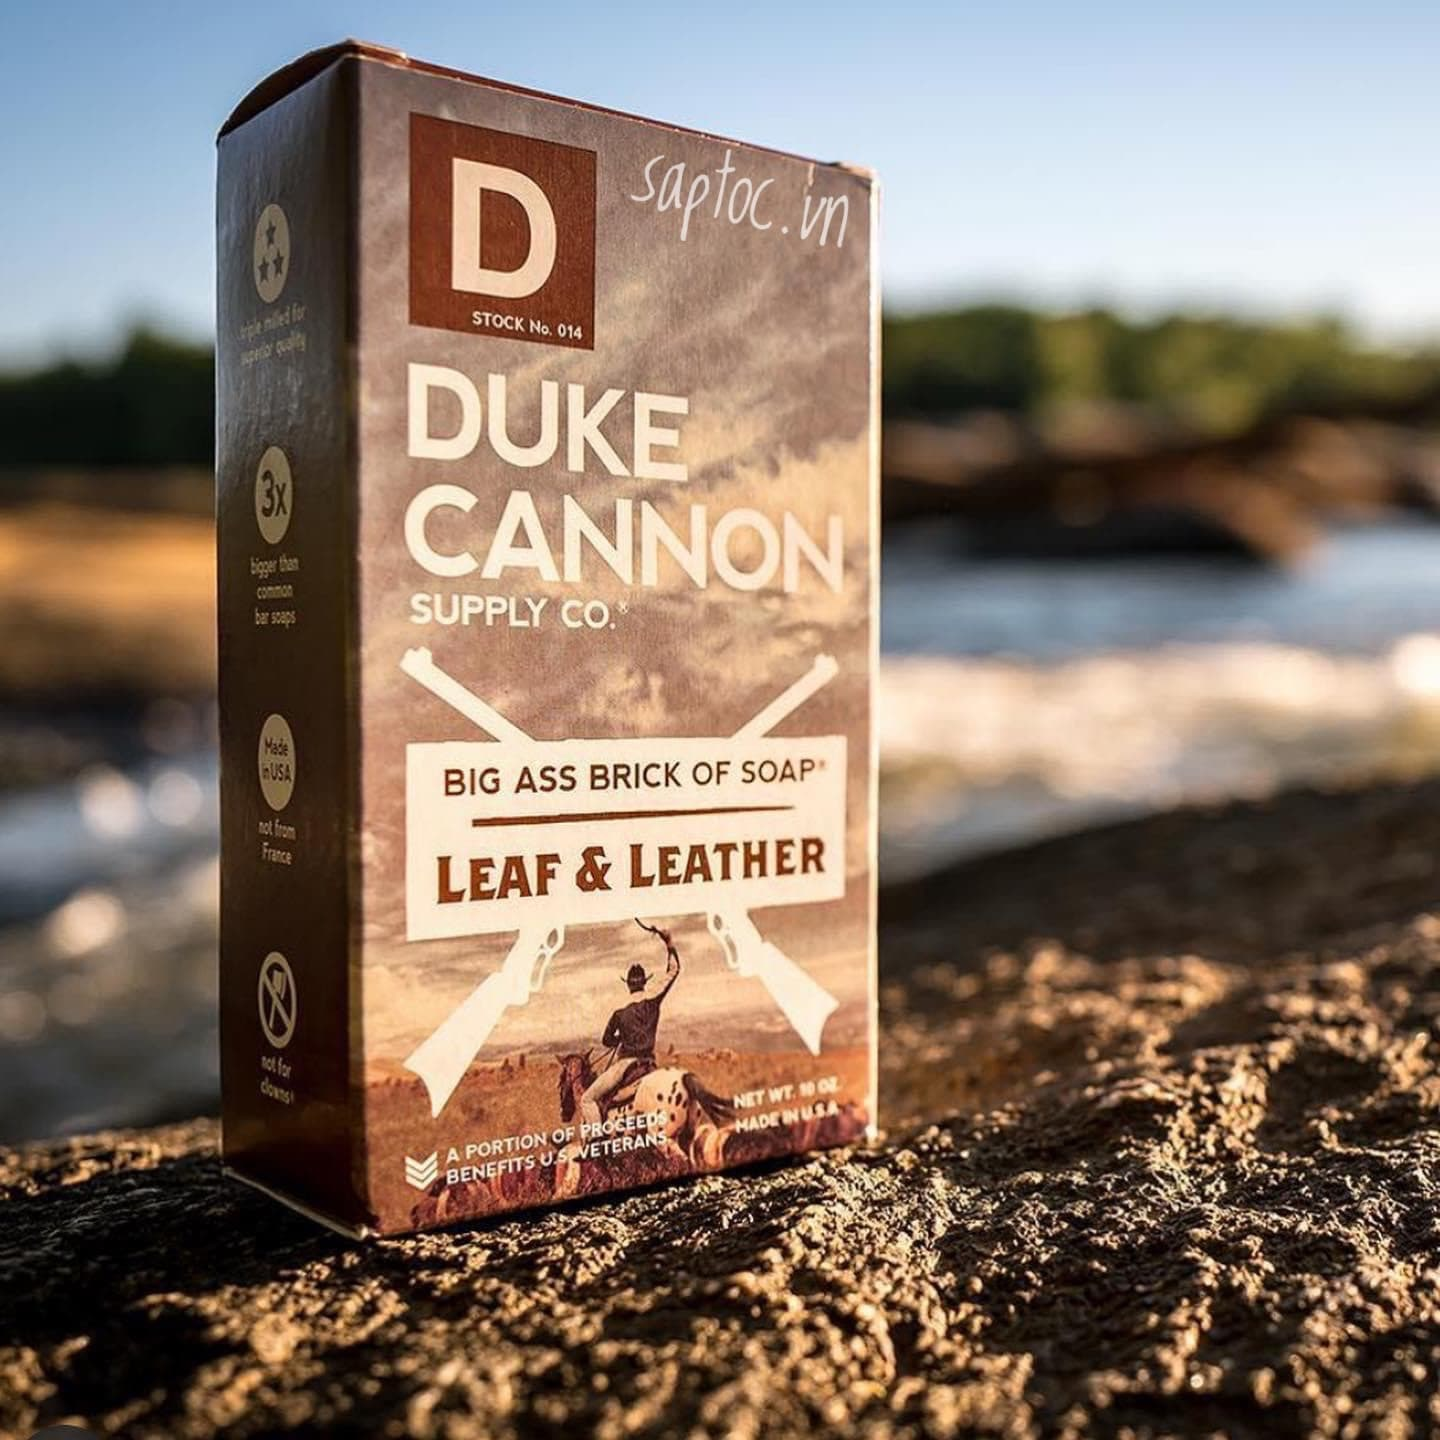 DUKE CANNON BIG ASS BRICK OF SOAP - LEAF AND LEATHER